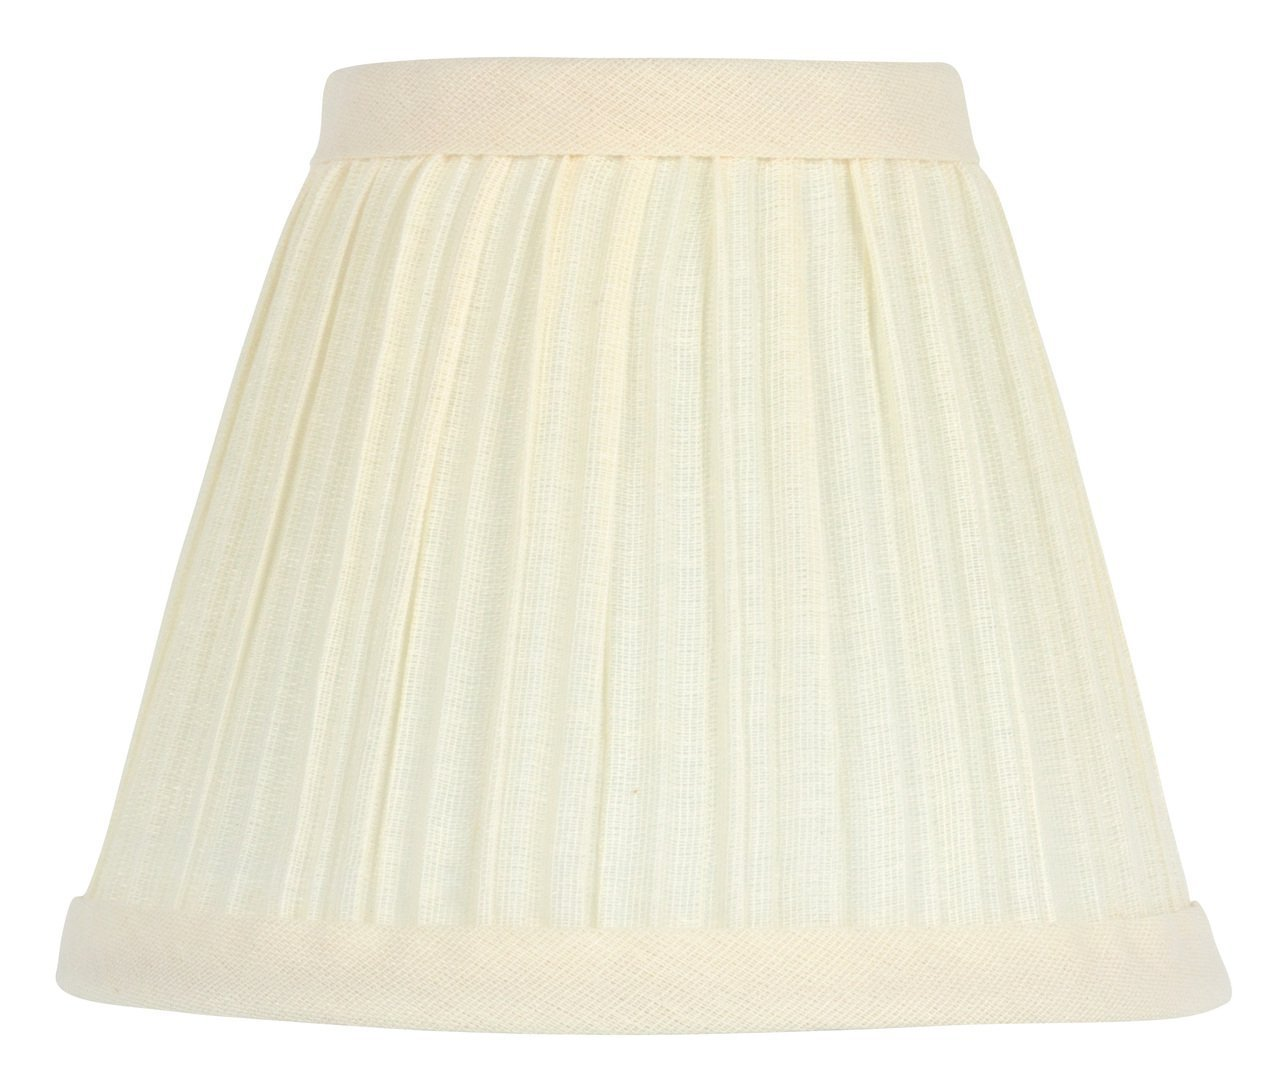 Upgradelights 5 Inch Clip On Mushroom Pleated Retro Drum Chandelier Lamp Shades in Eggshell (Set of 2). 3x5x4